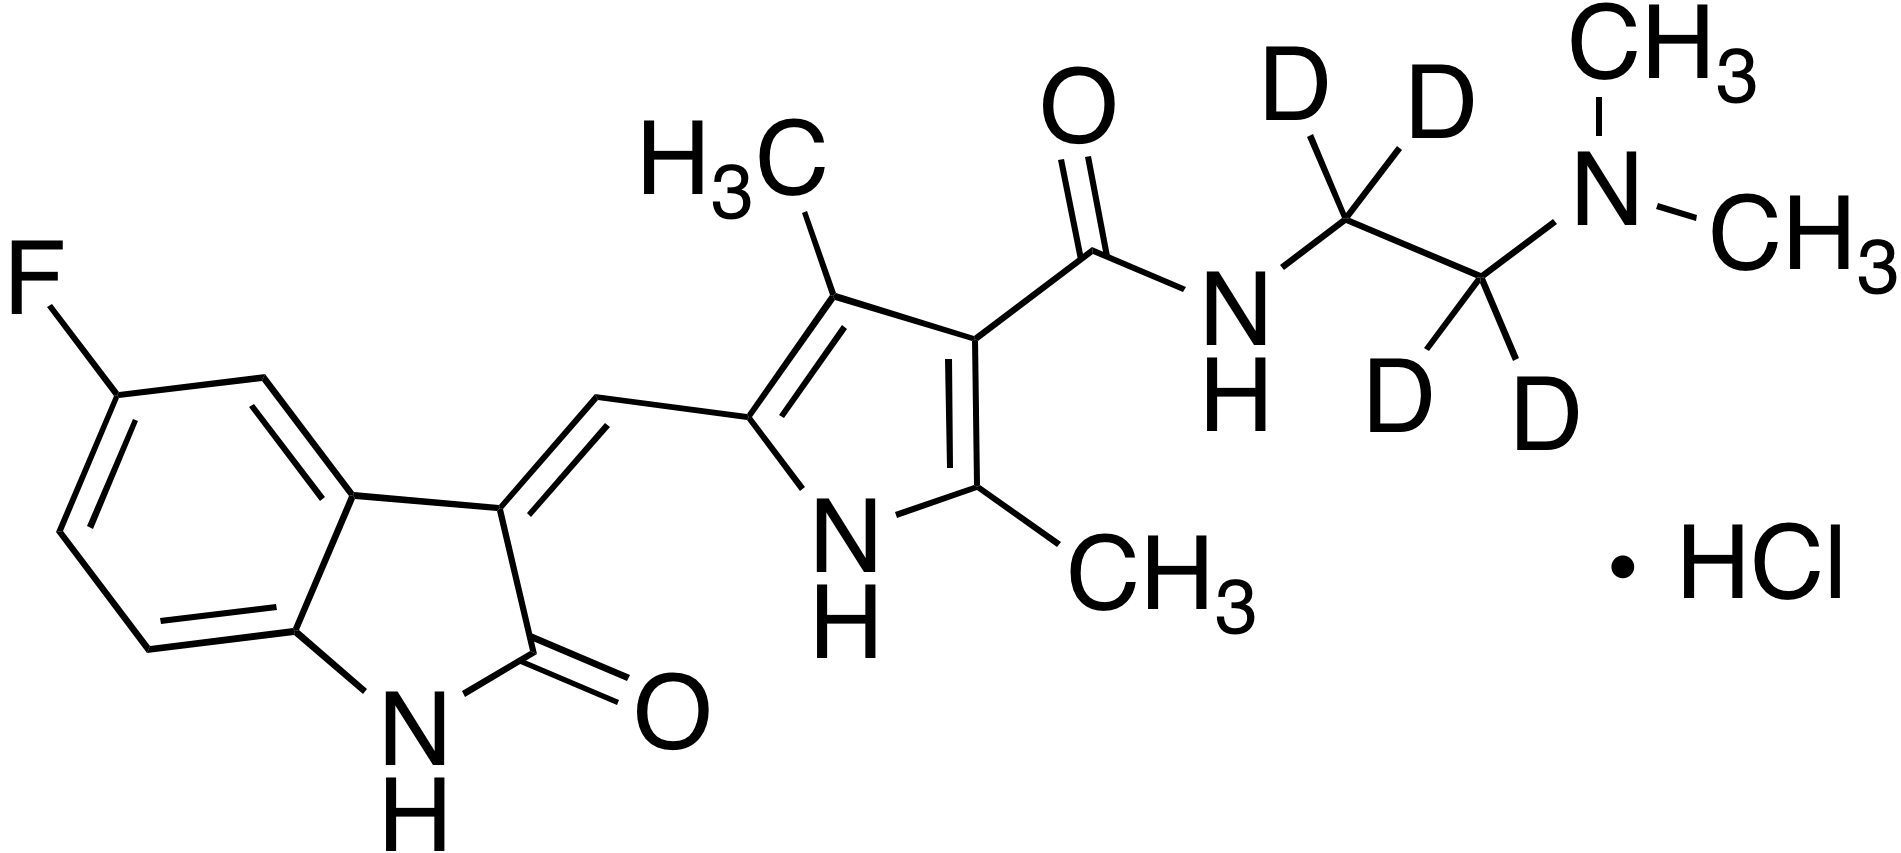 Sunitinib N,N-dimethyl-d<sub>4</sub> impurity